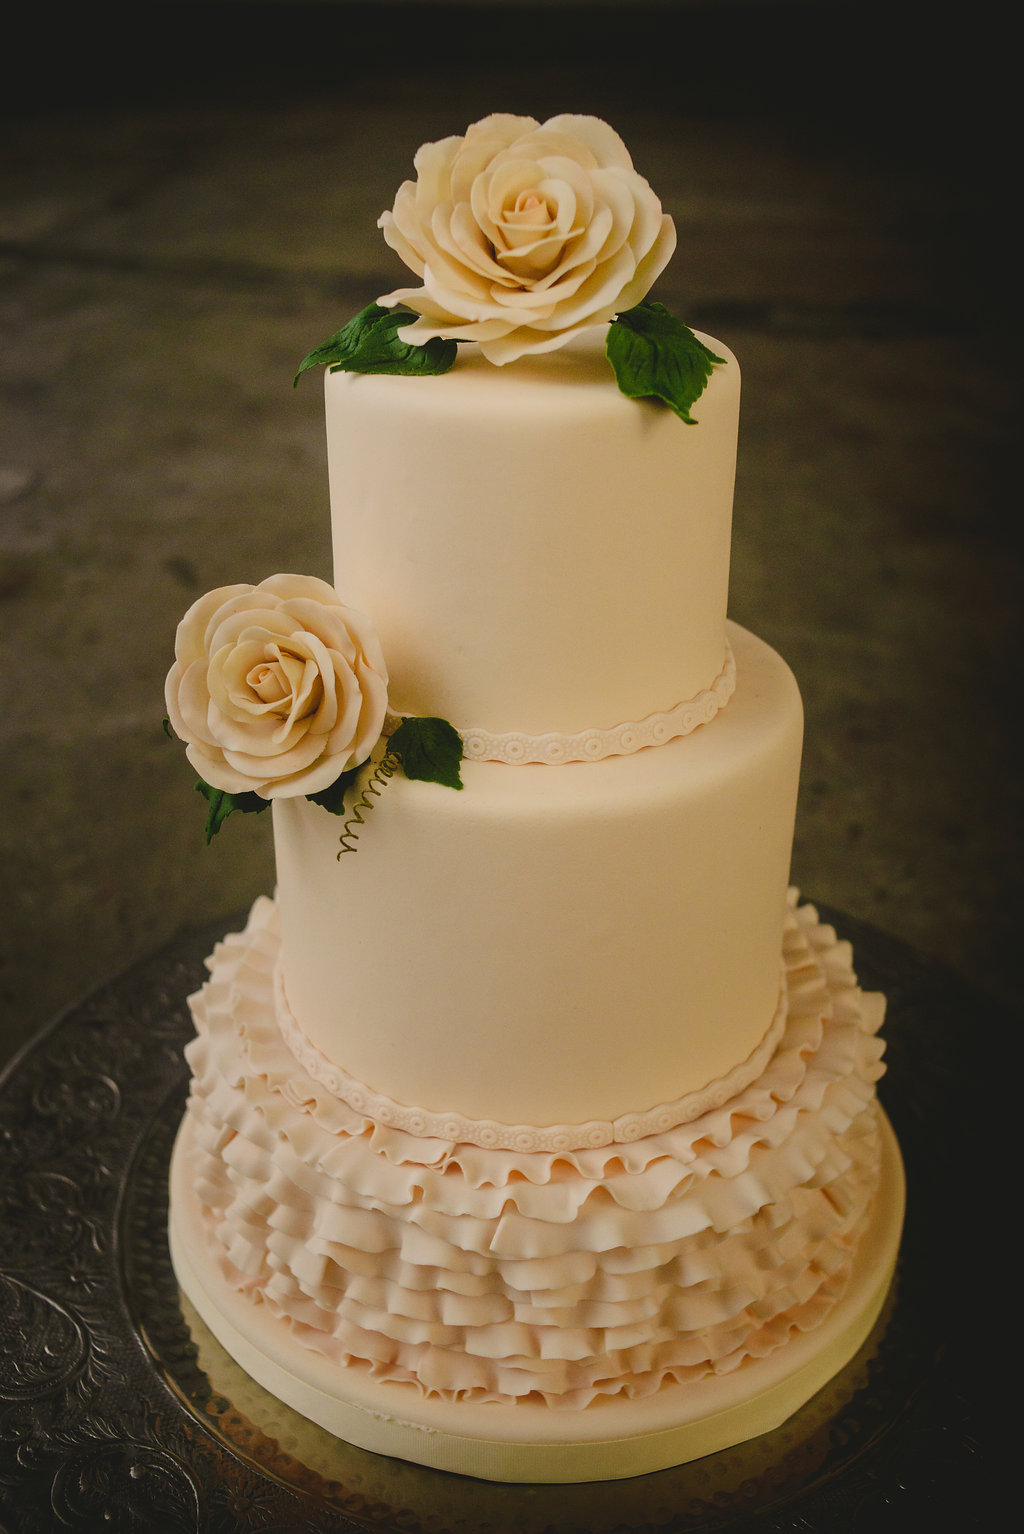 Ivory fondant wedding cake with ruffles